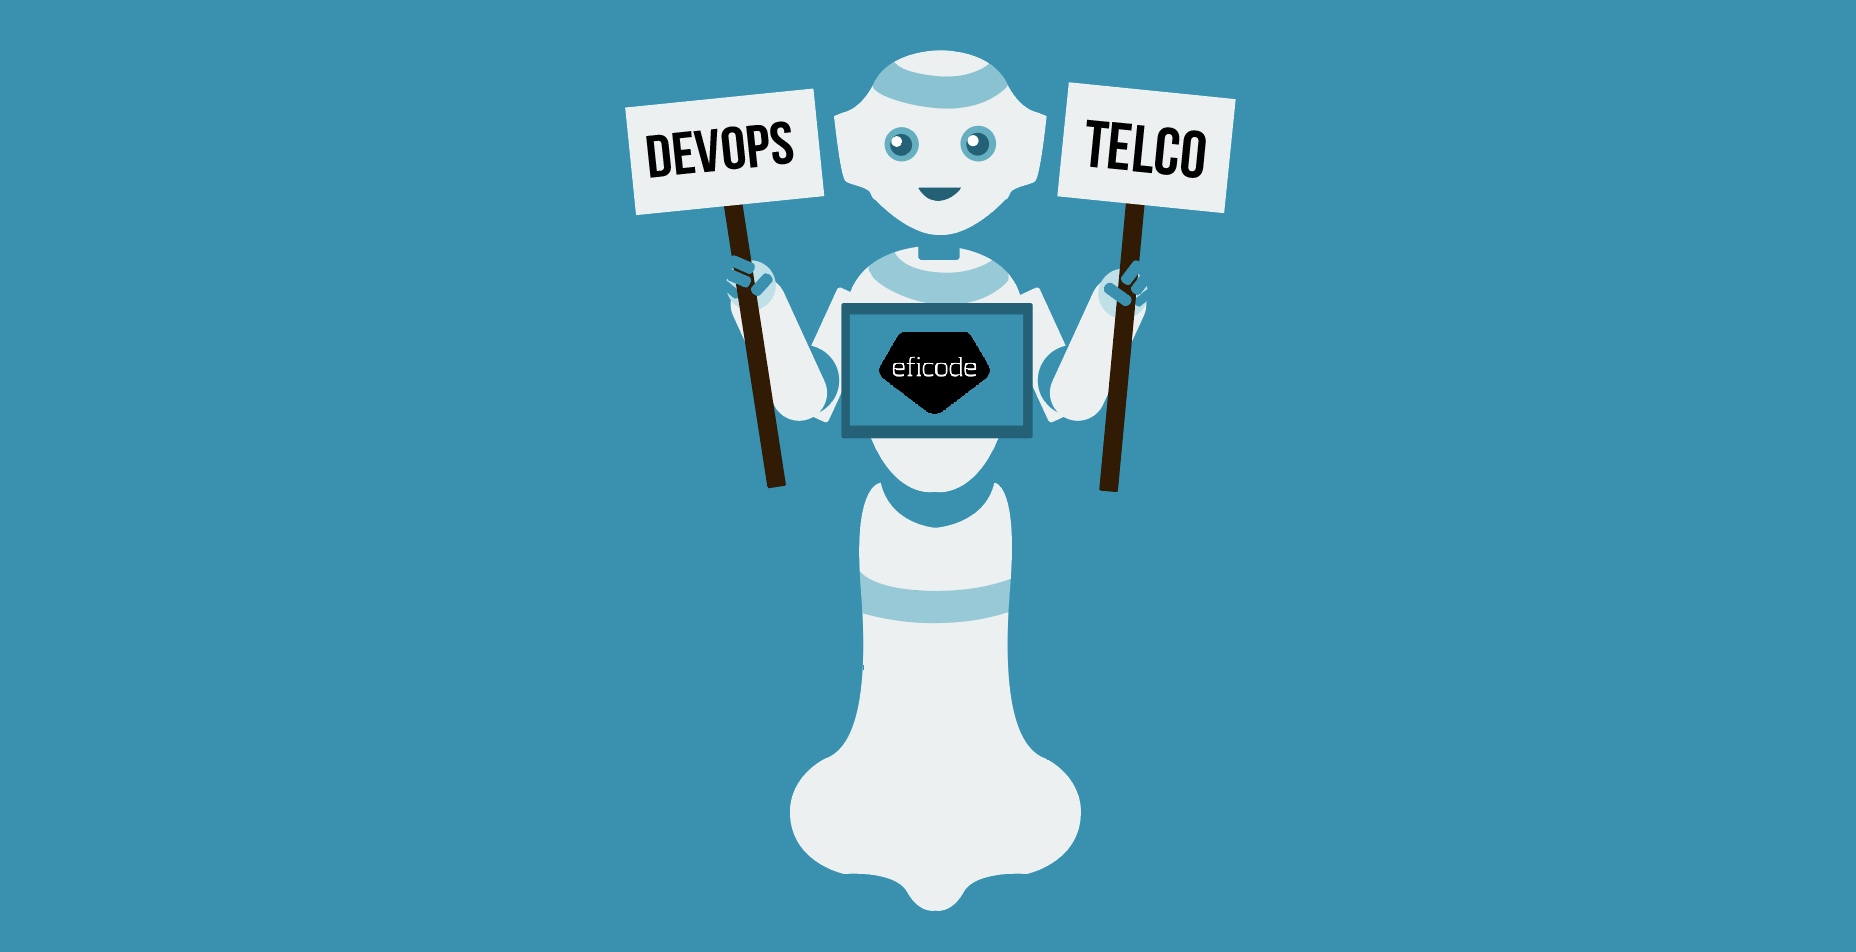 Telco and DevOps are a match made in automation heaven at Eficode!